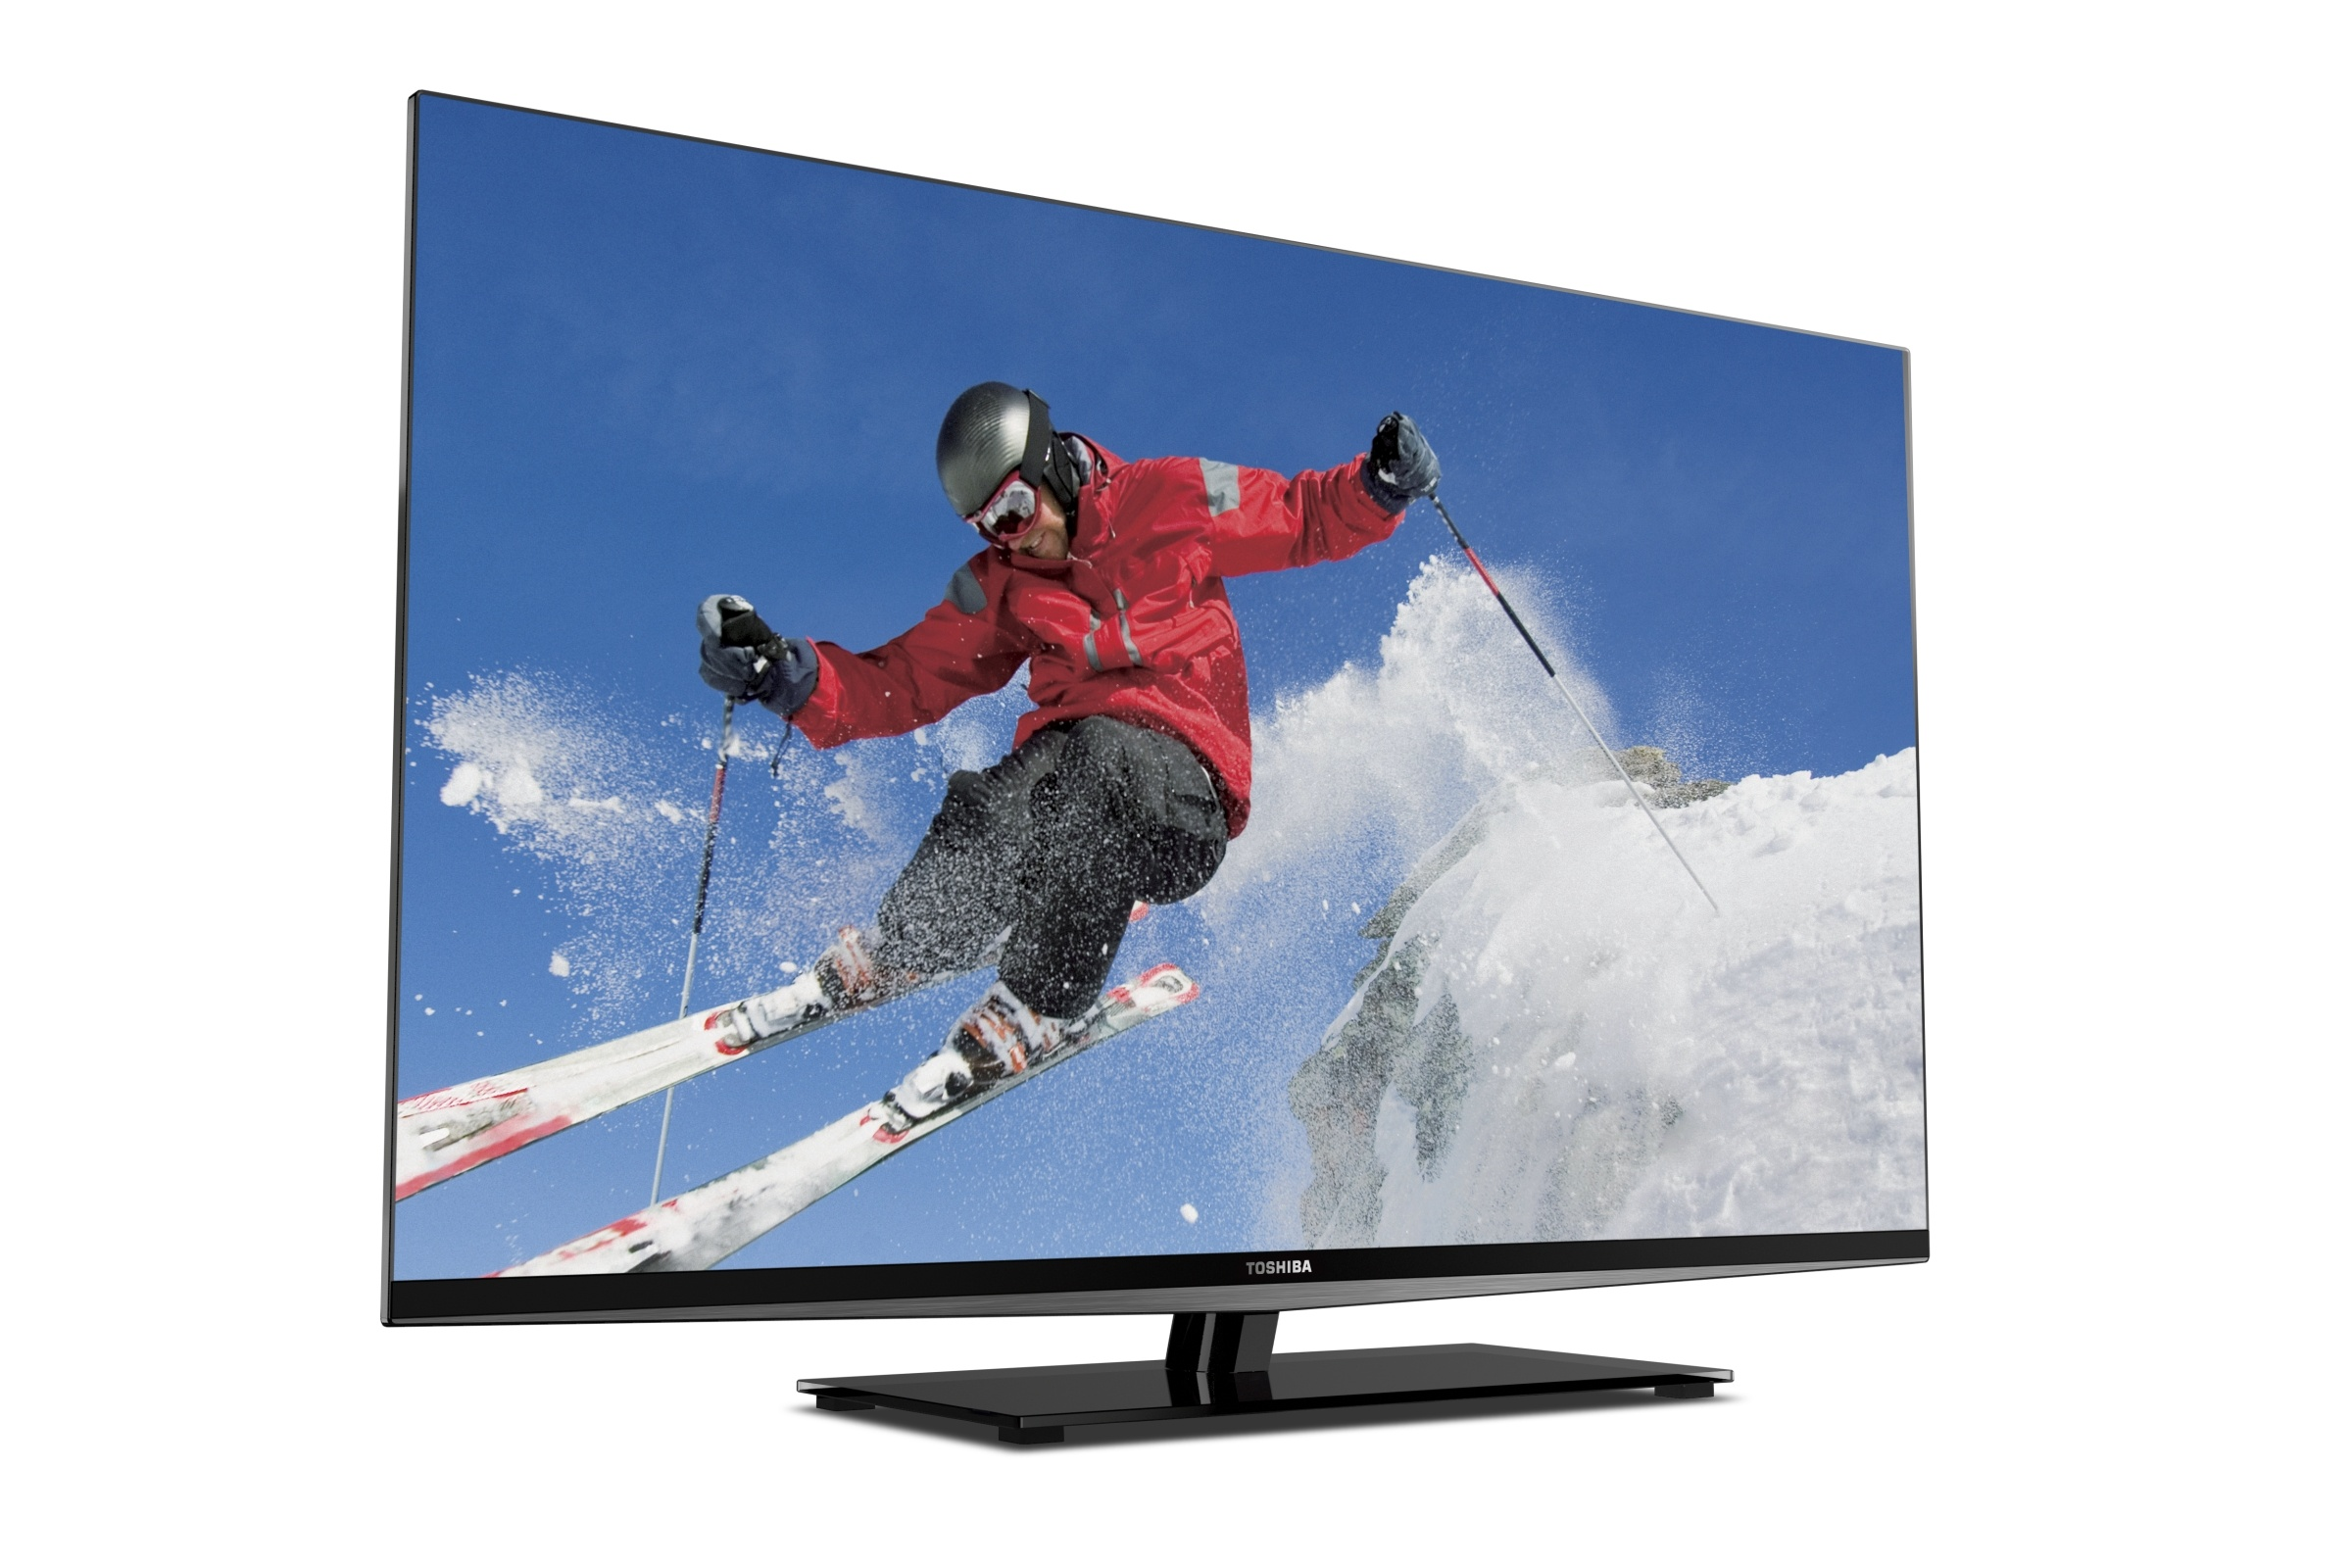 Toshiba L7200 3D Smart TV